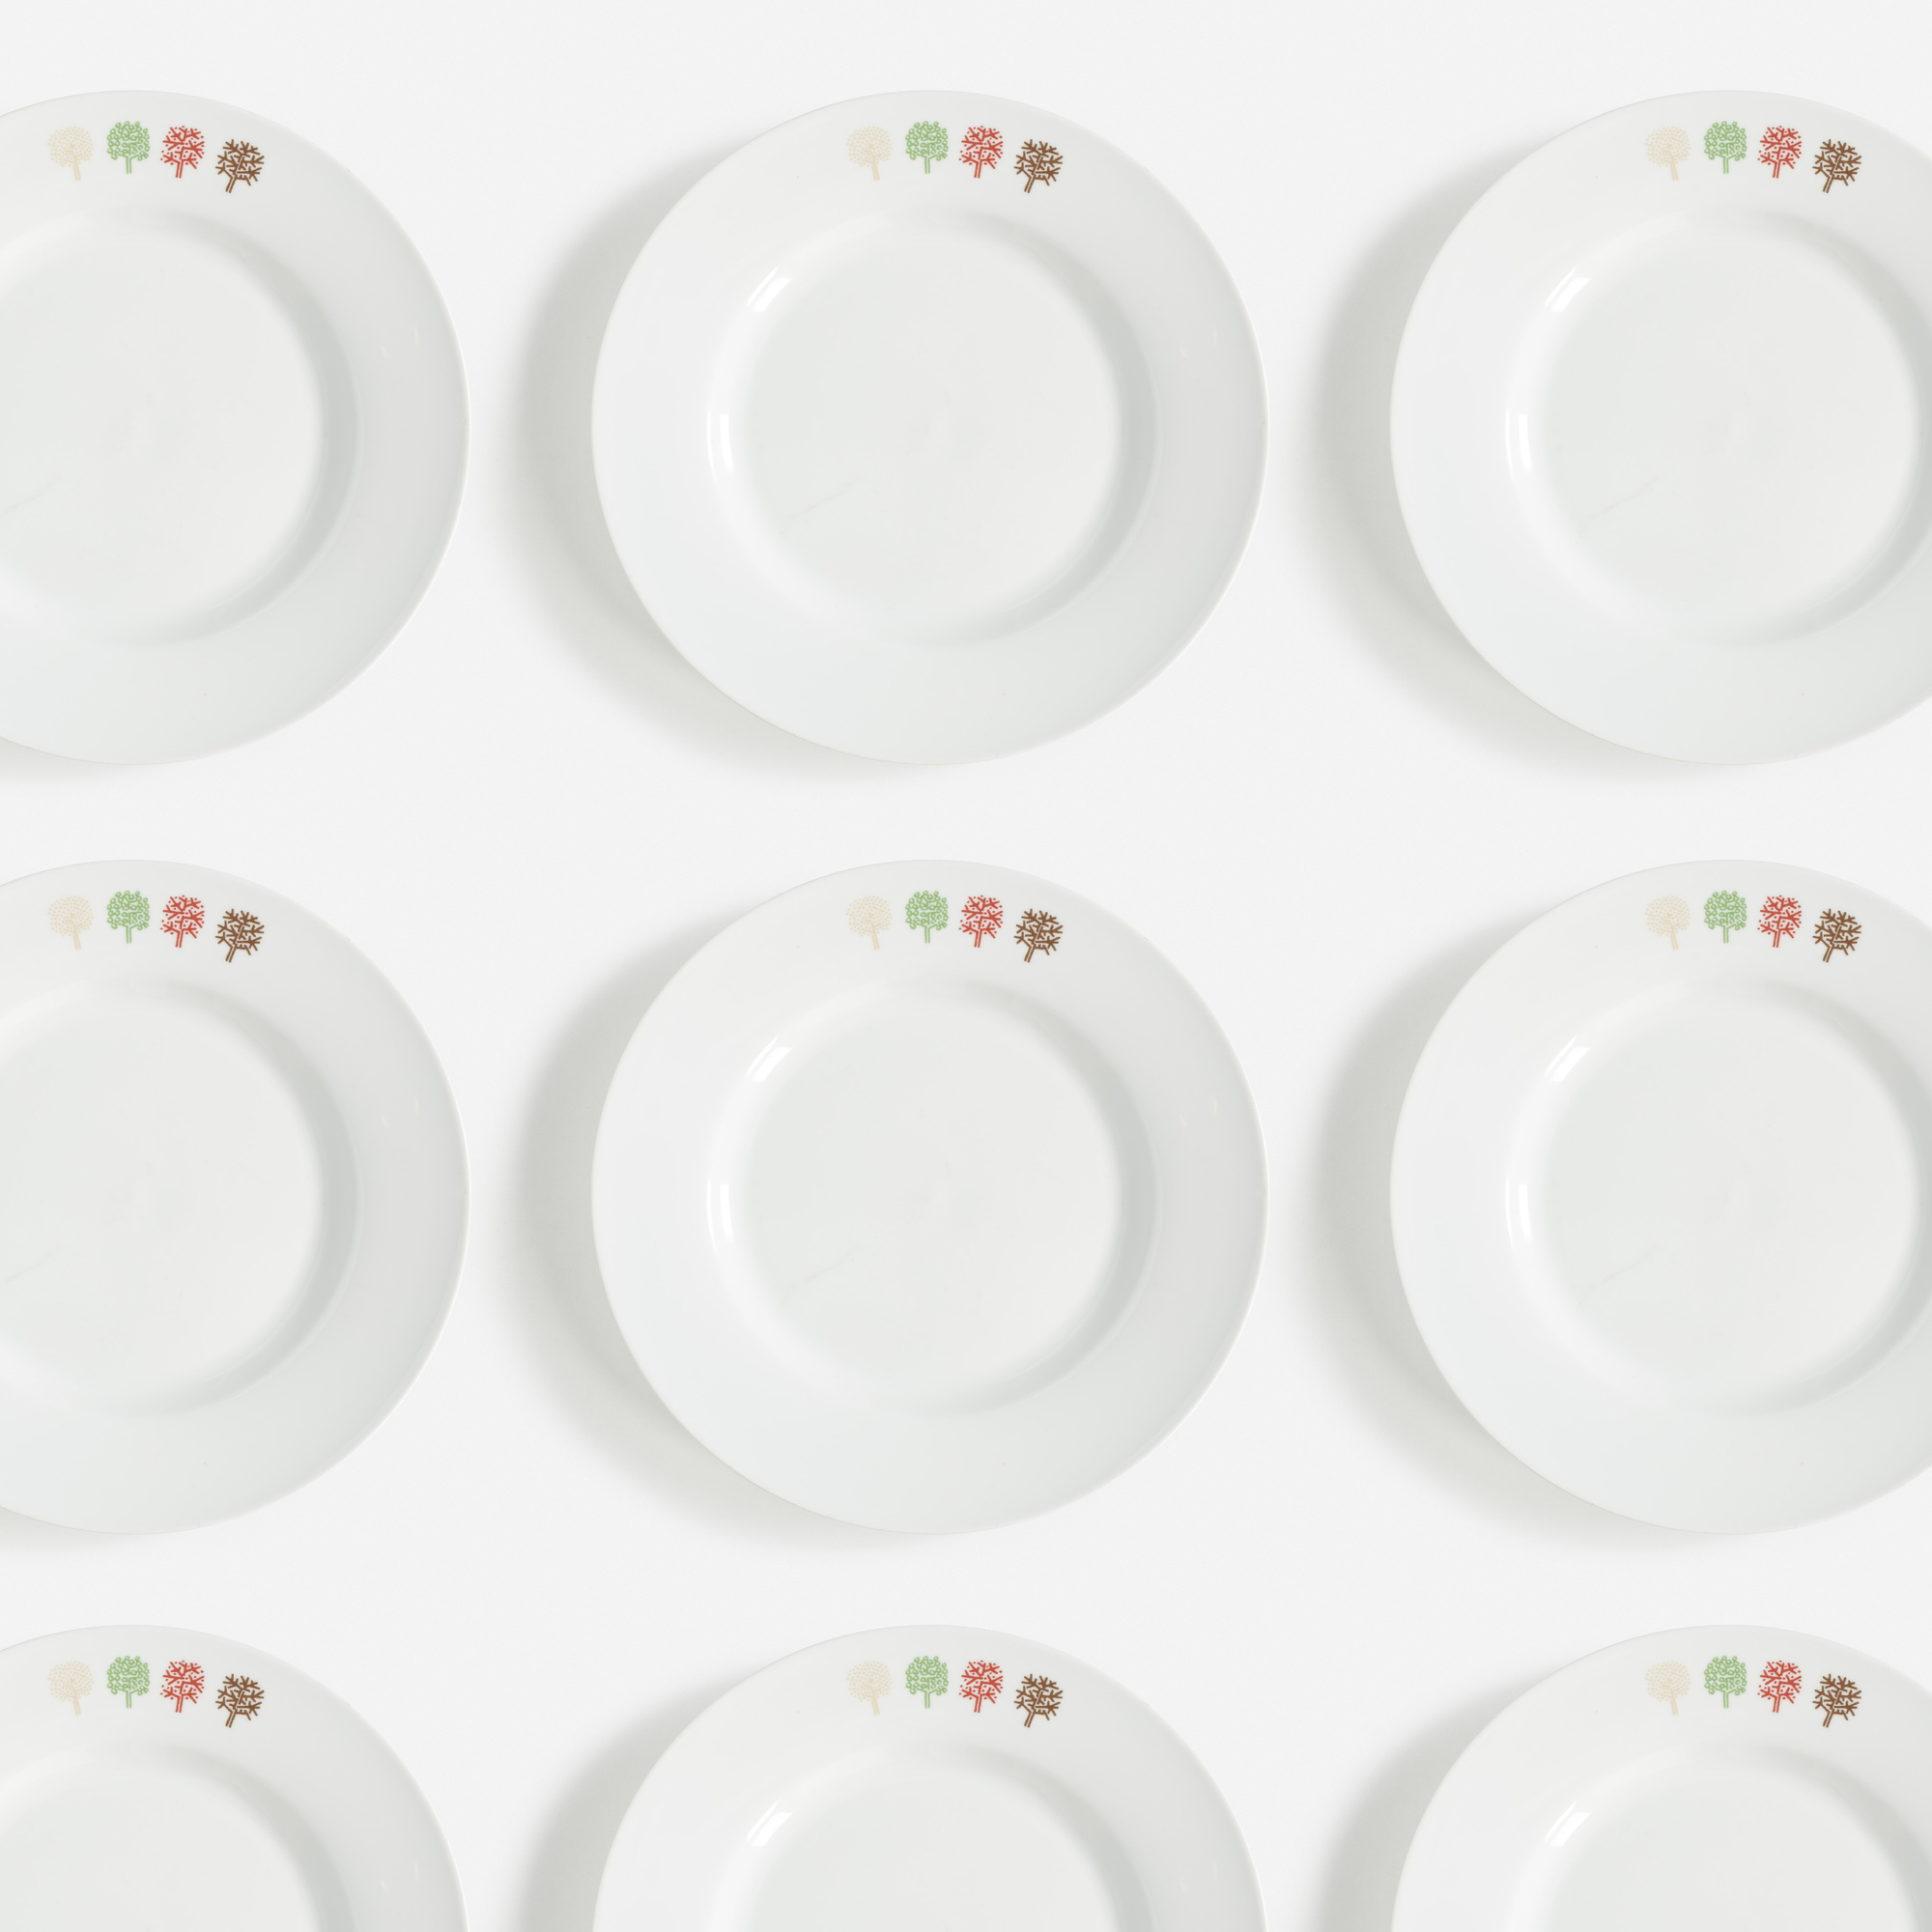 439:  / Collection of Four Seasons plates, set of twenty-four (1 of 1)